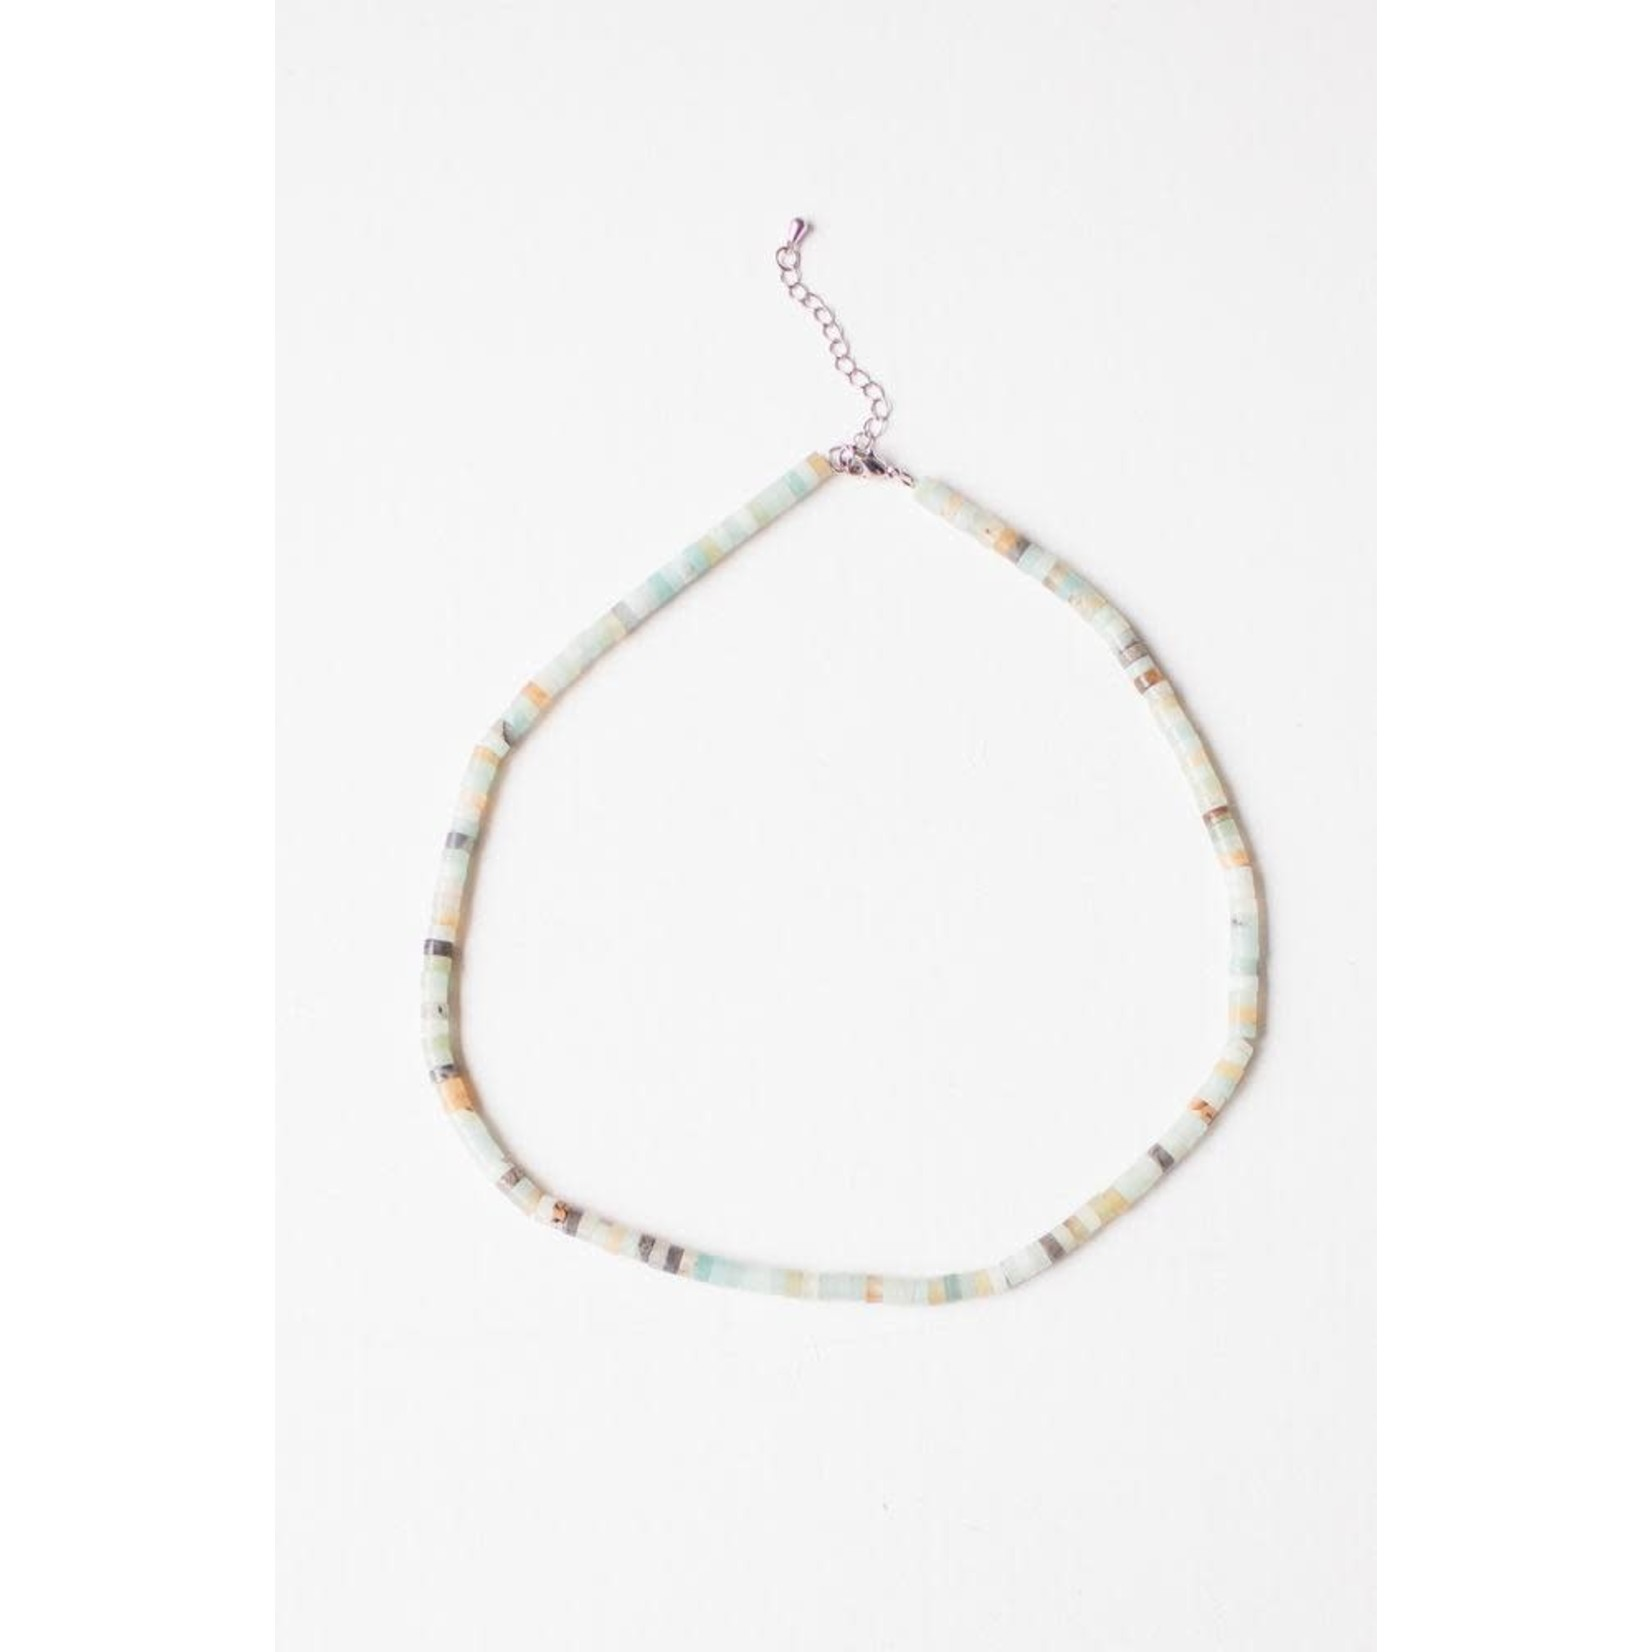 Leslie Curtis Jewelry Designs Melissa Amazonite Necklace